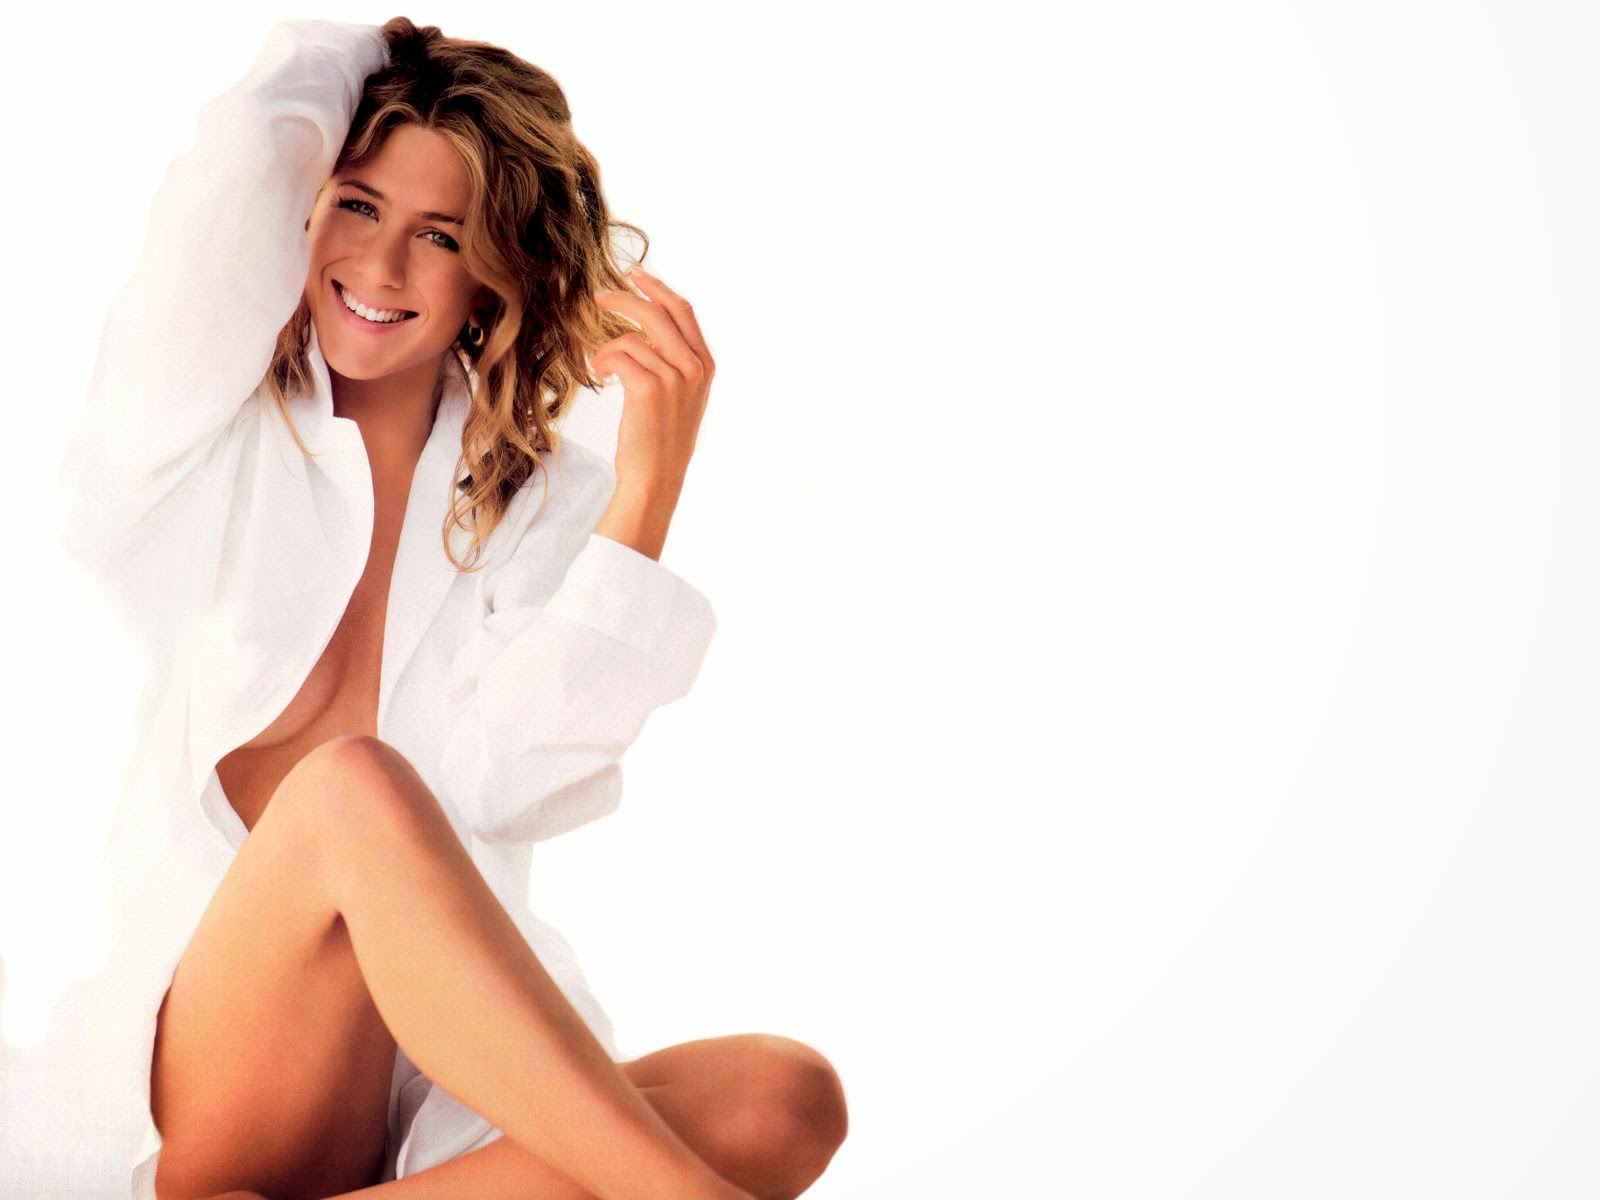 70 Hot Pictures Of Jennifer Aniston Explore Amazing Fit -2022